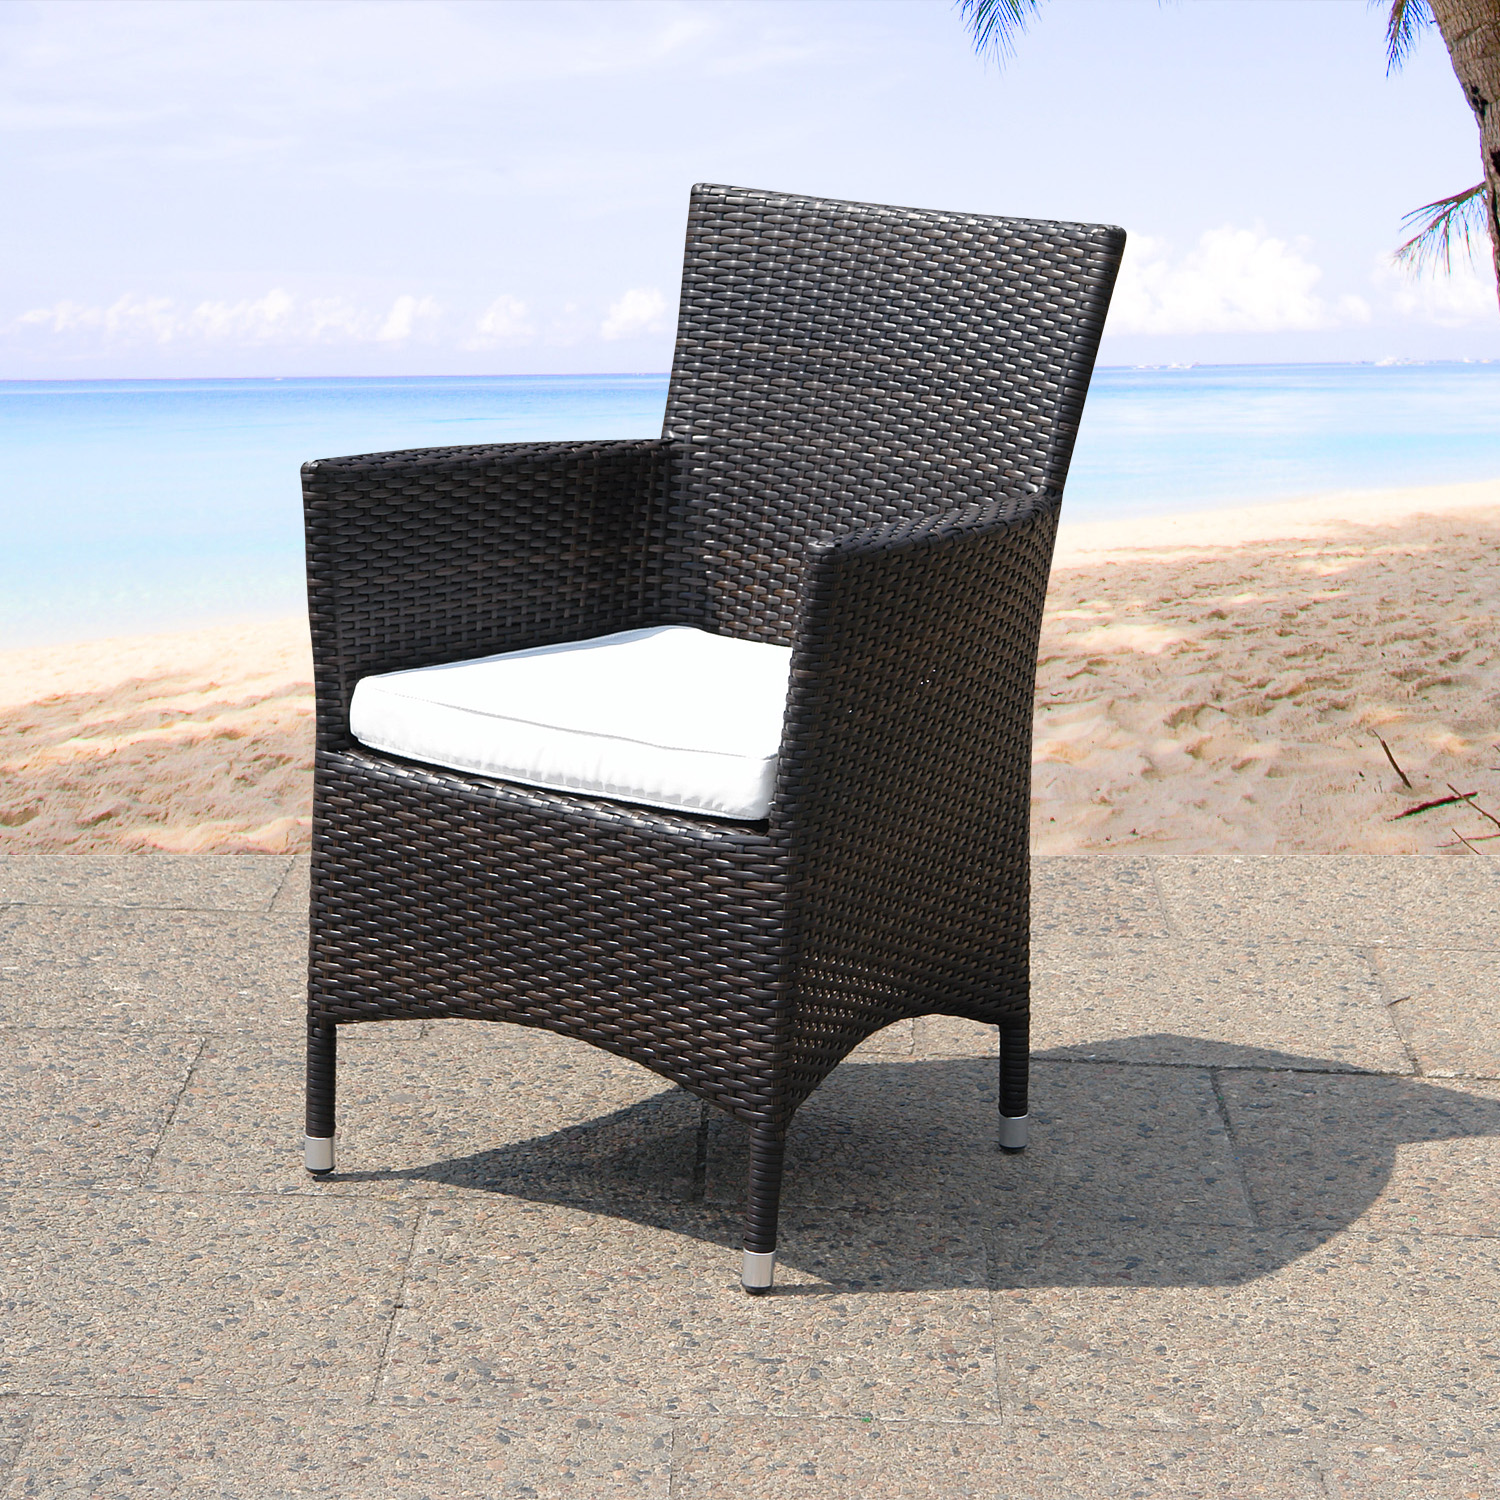 Patio furniture cushions for wicker trend for Outdoor furniture wicker